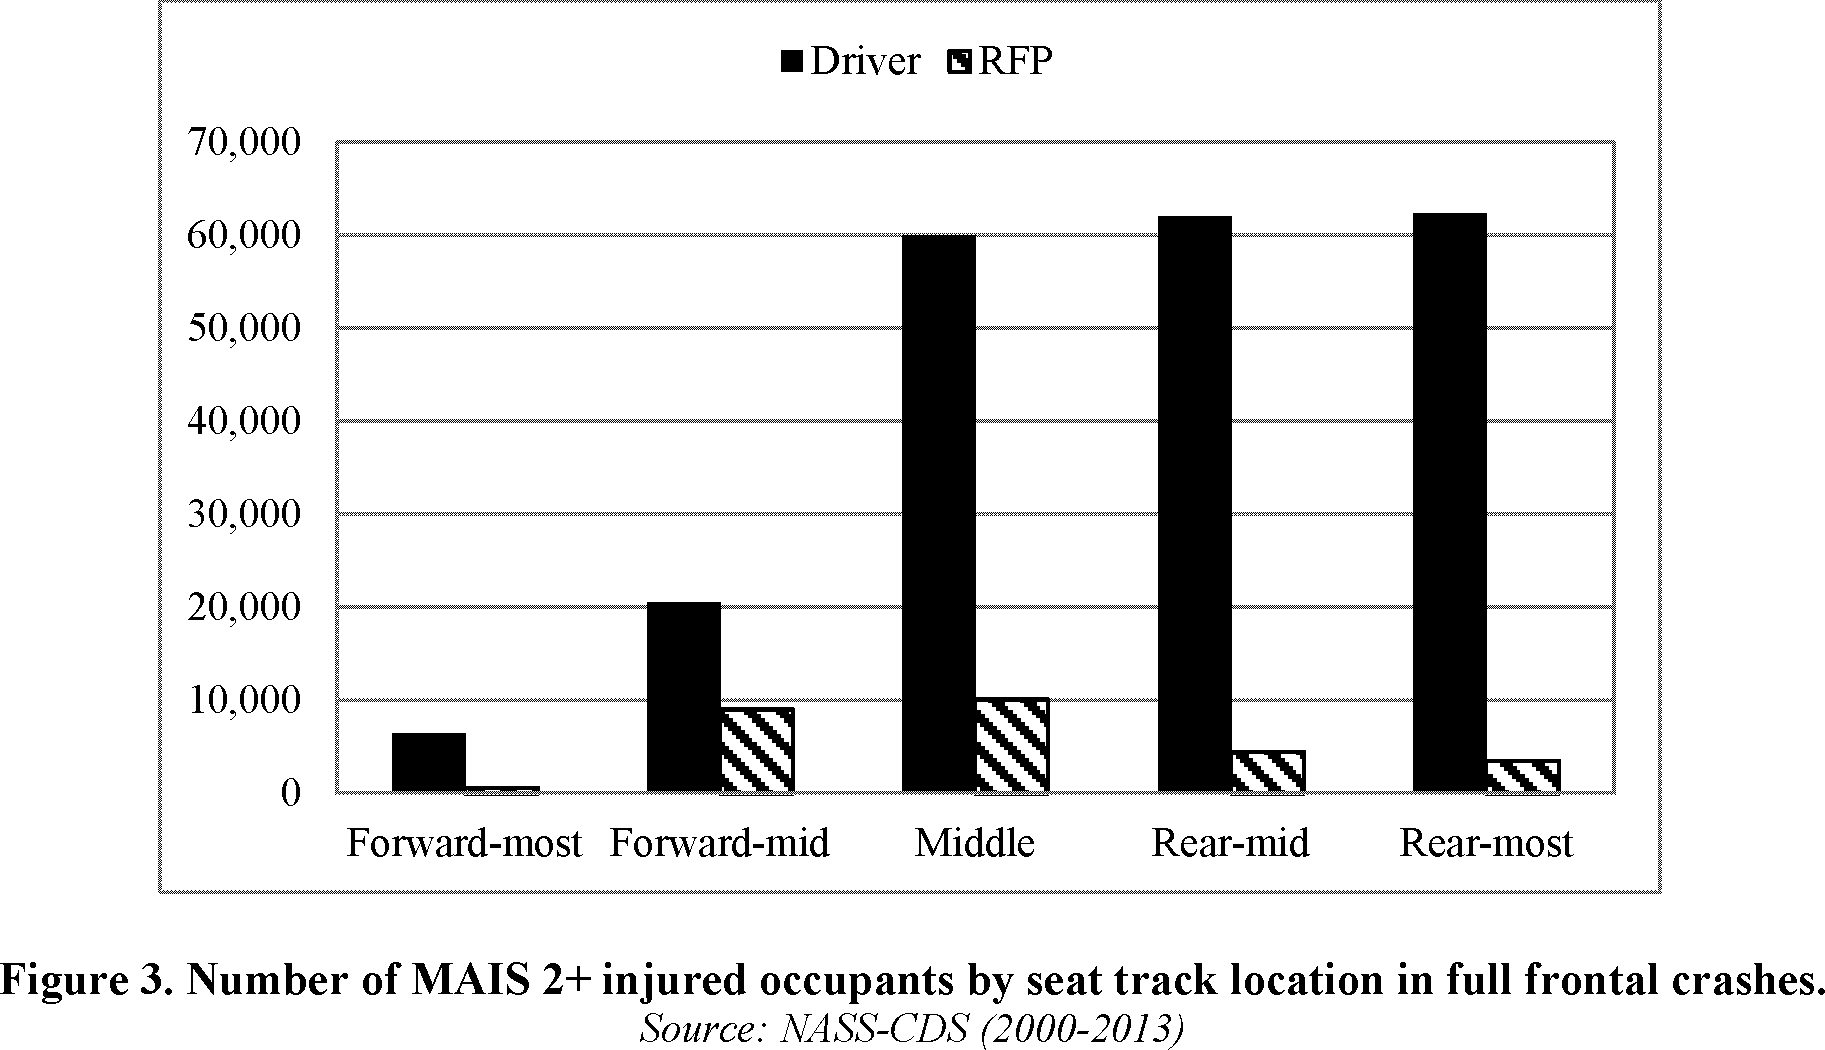 the appropriateness of potentially seating the right front passenger hiii 5f dummy in a position that is closer to or at the mid track location nhtsa